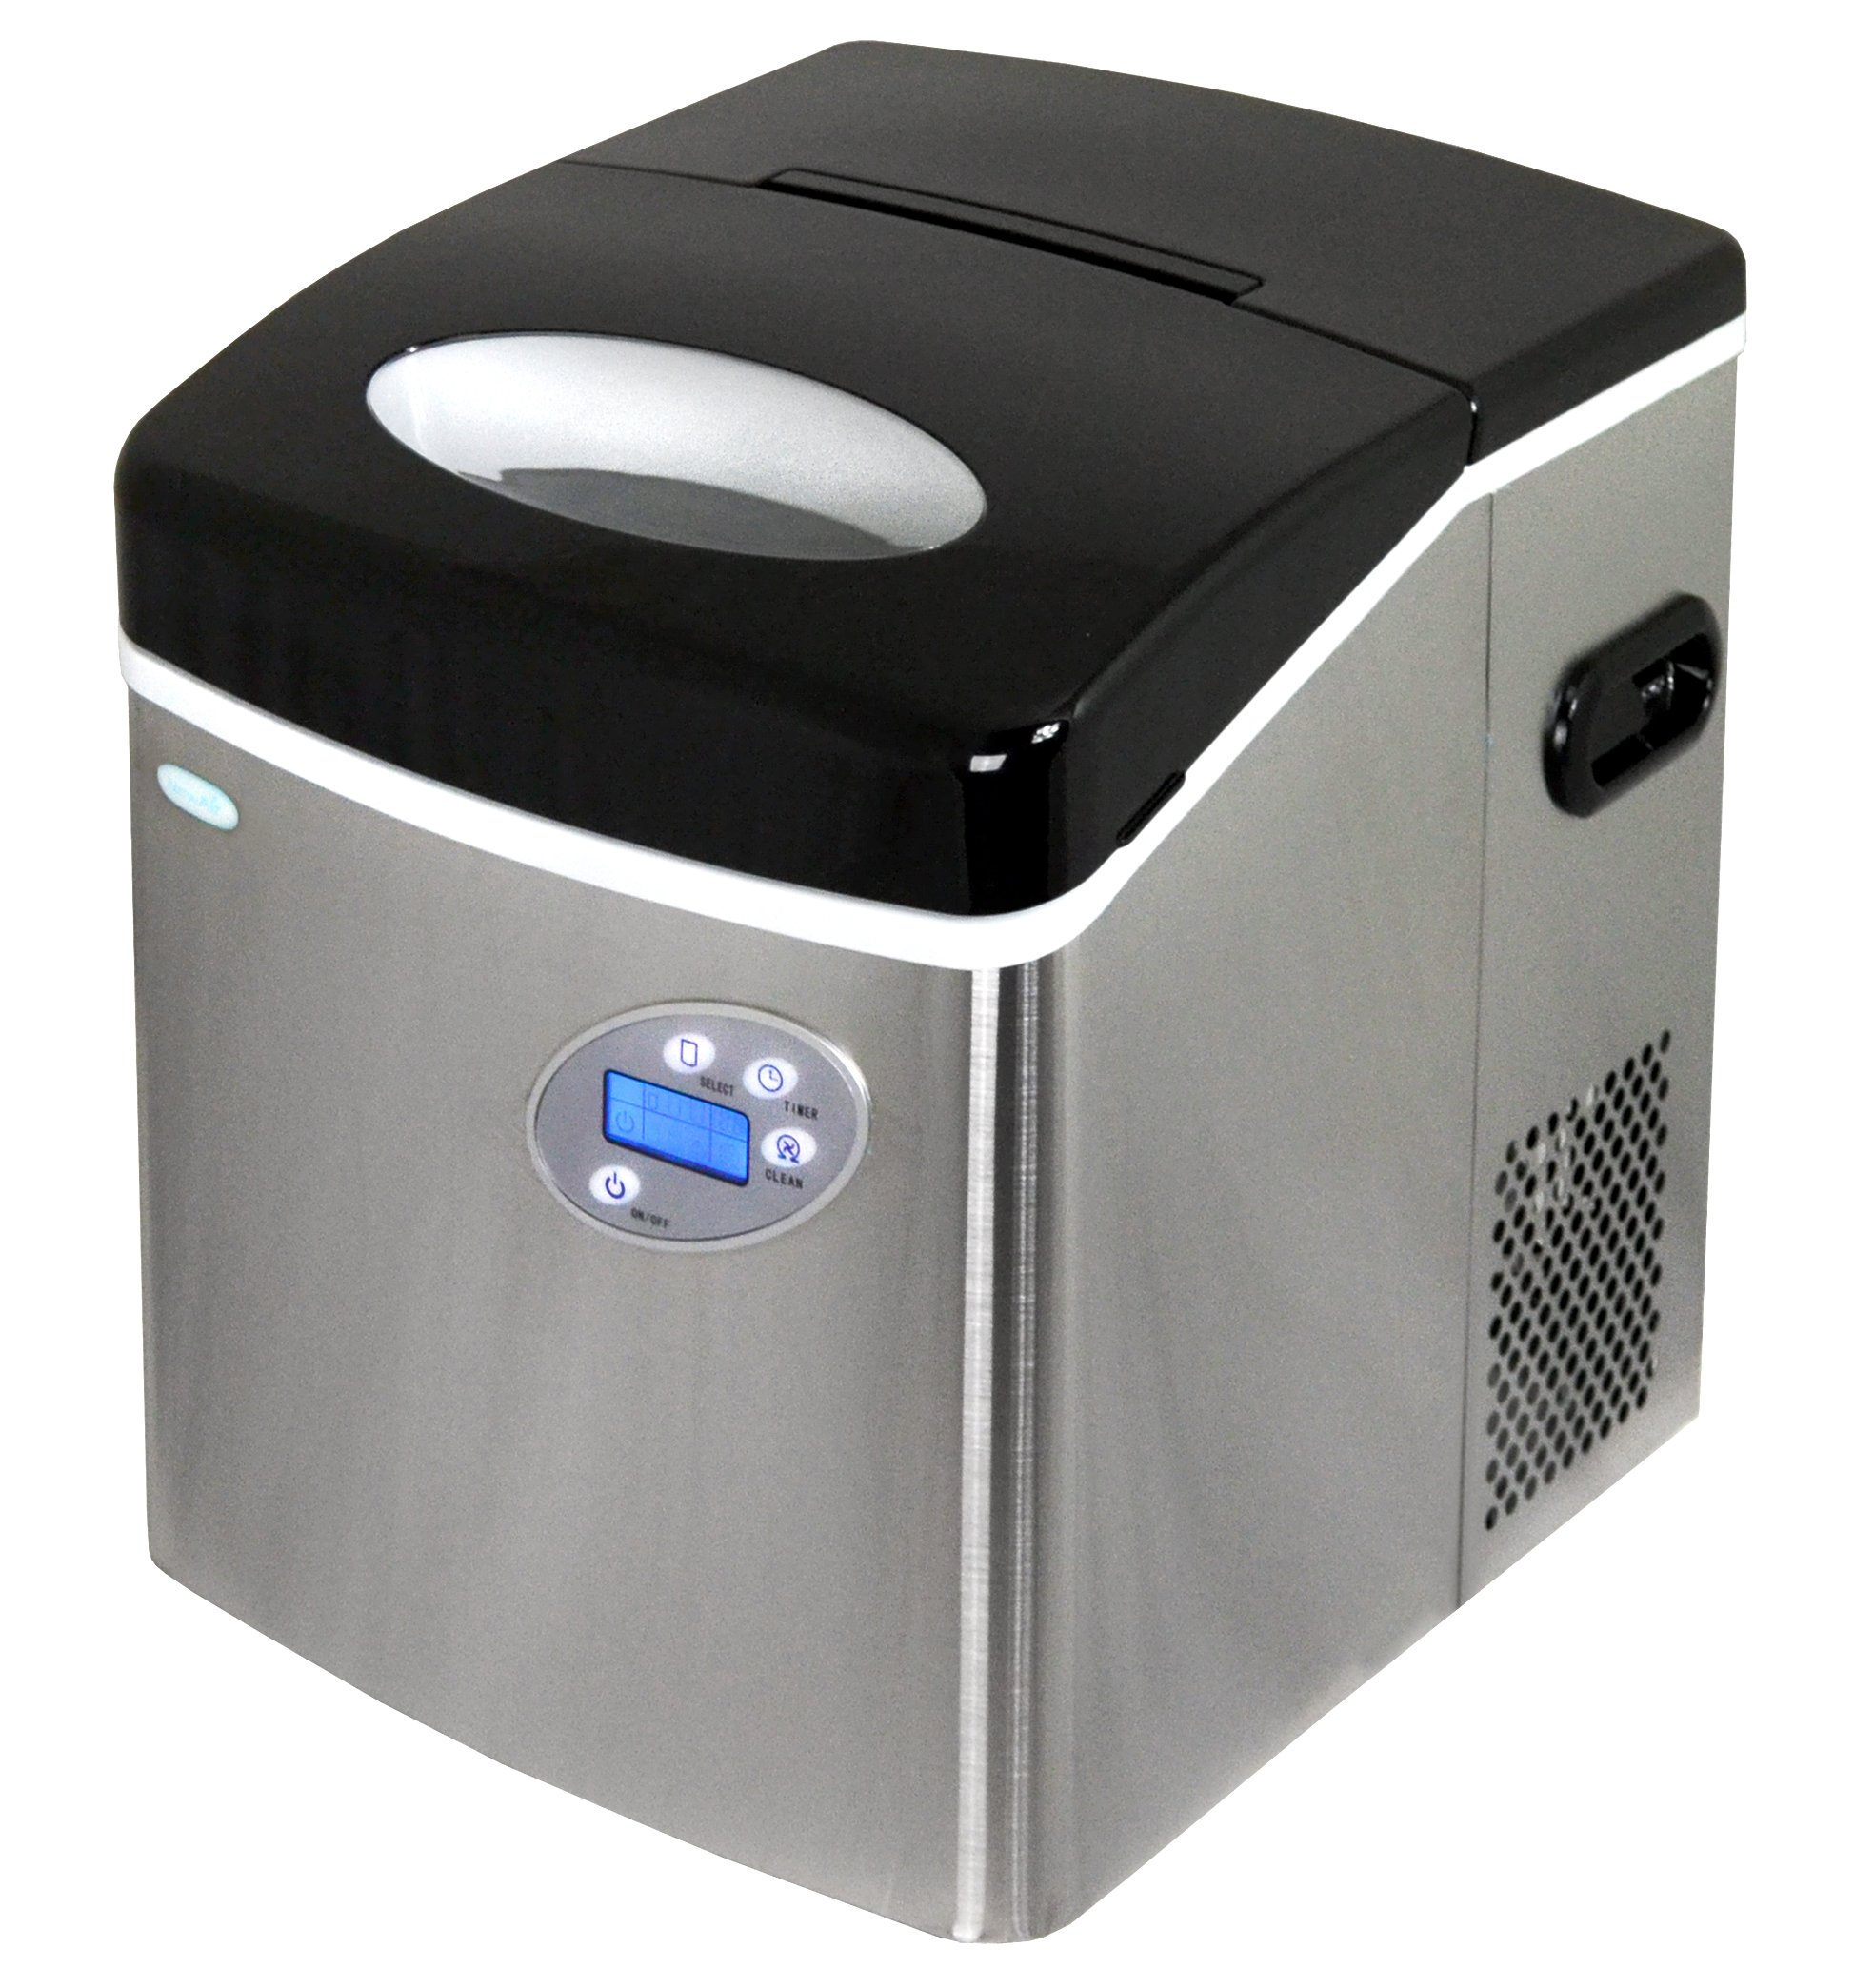 Newair Ai-215Ss Stainless Steel Portable Ice Maker With 50 Lbs. Daily Capacity 12